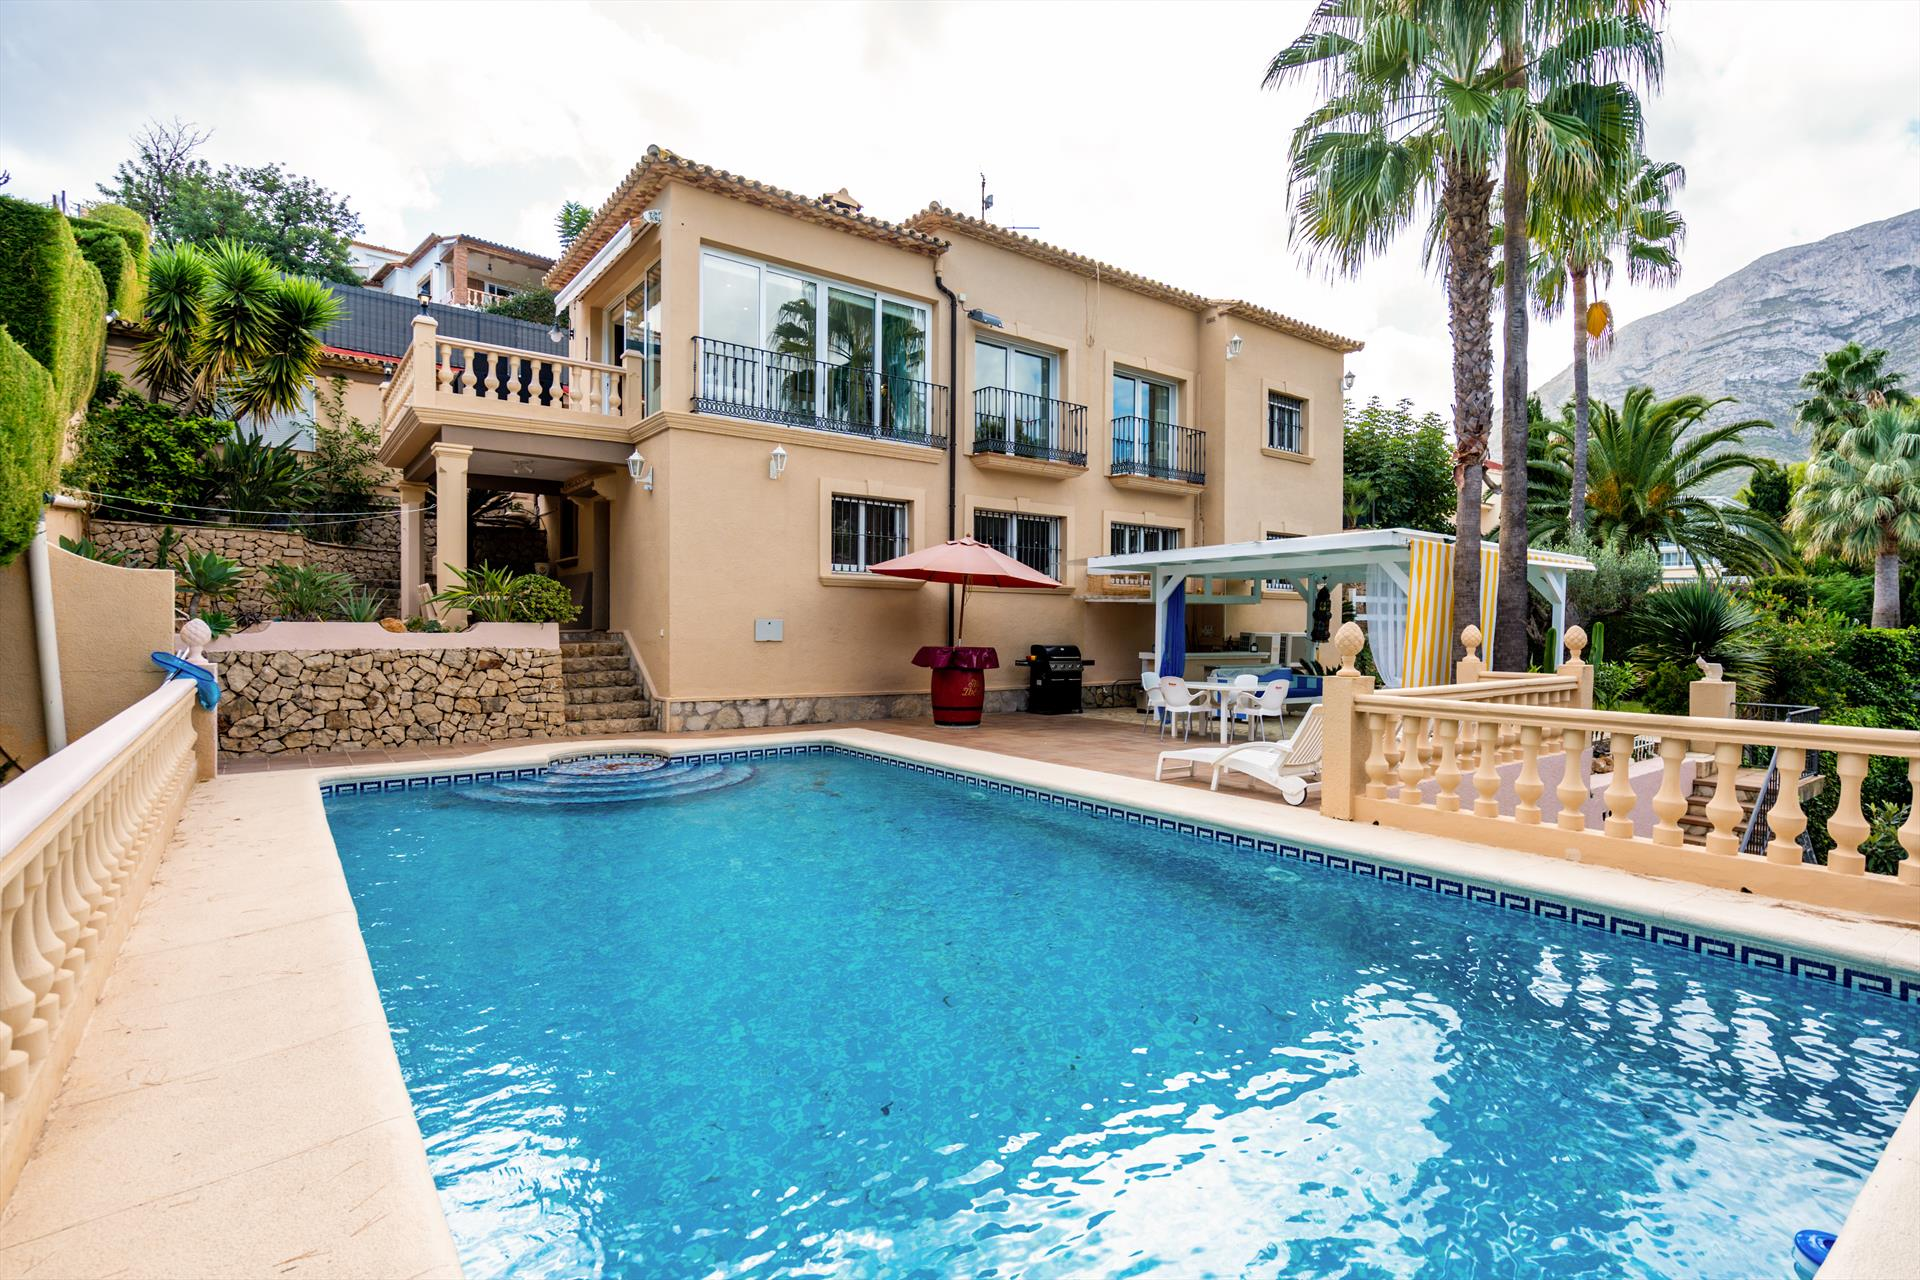 Flavie 10 pax, Large and classic villa in Denia, on the Costa Blanca, Spain  with private pool for 10 persons.....